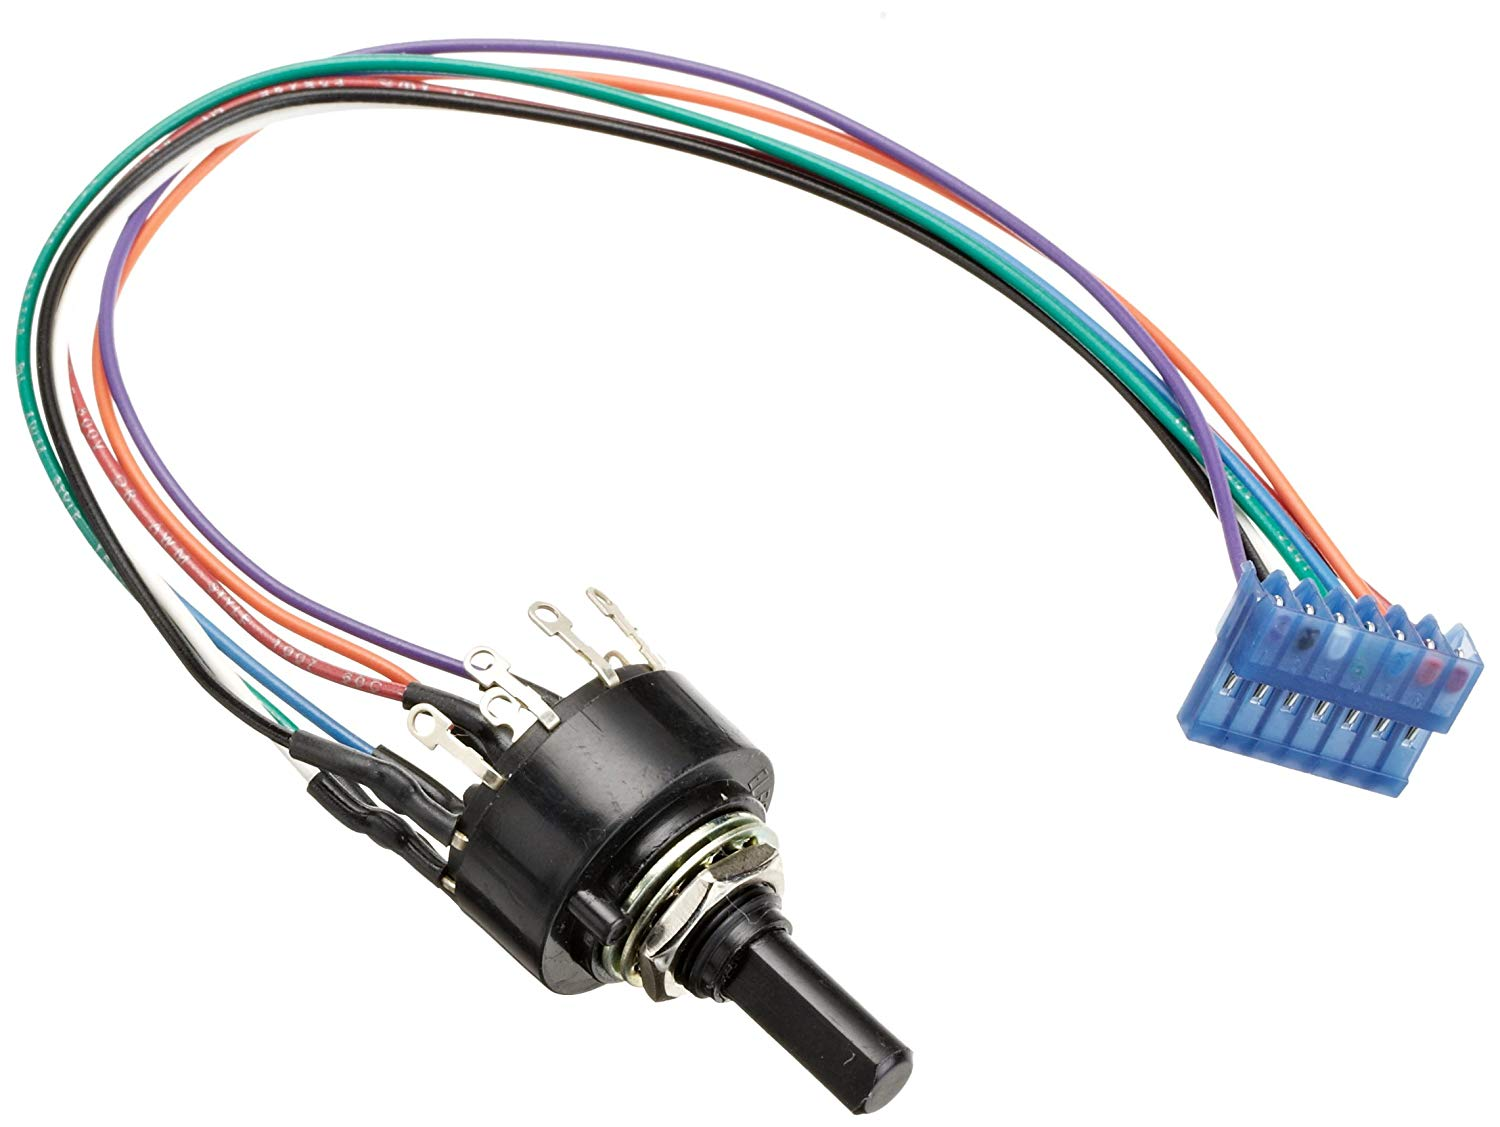 Zodiac 1-9-144 6 Position Rotary Switch Replacement